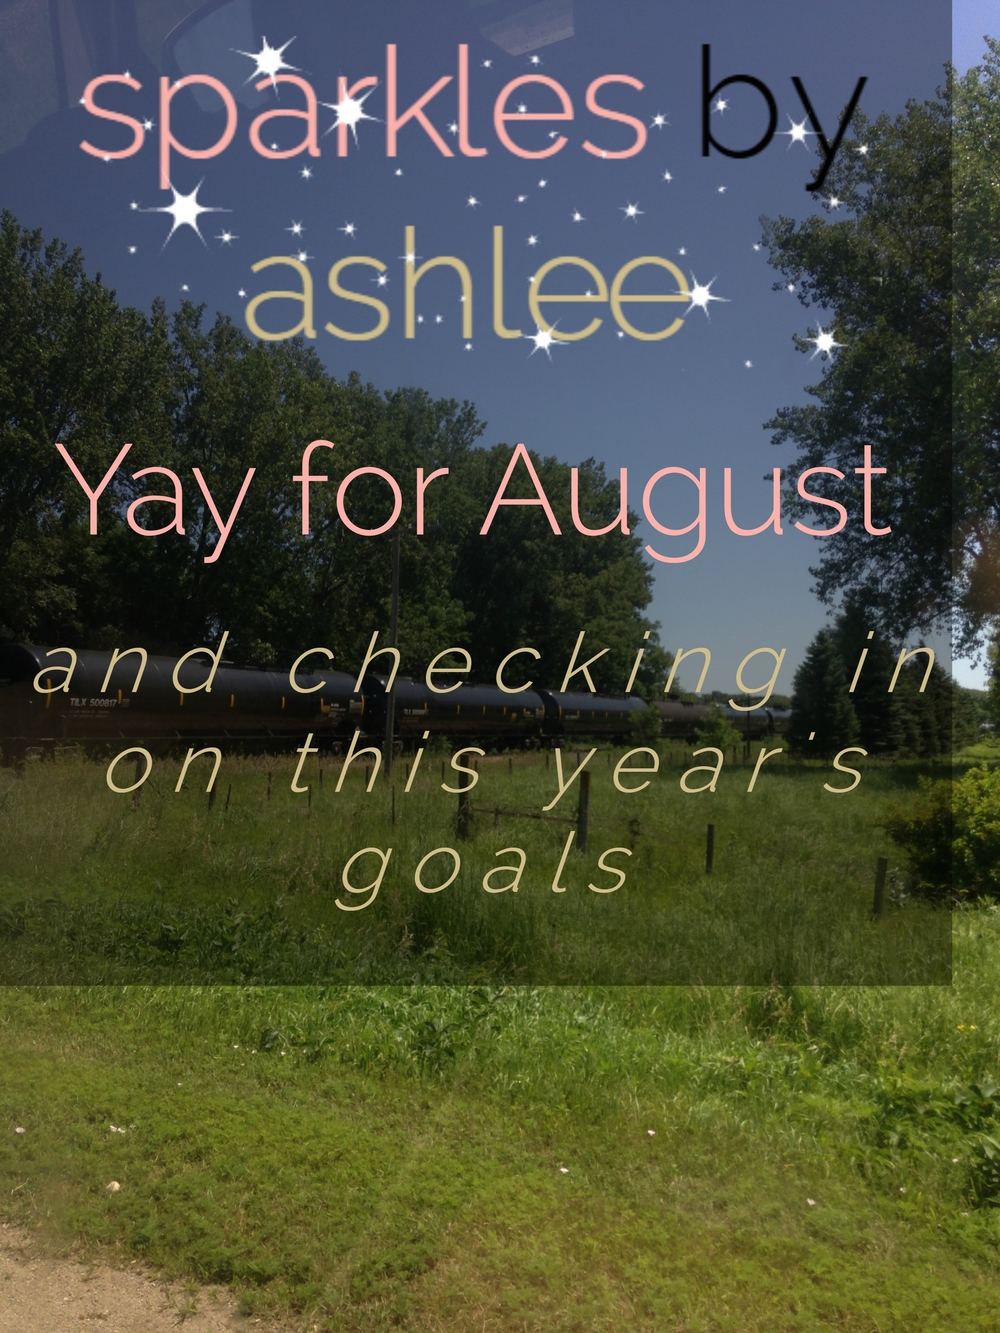 Yay-for-August-and-Checking-in-on-This-Years-Goals-Sparkles-by-Ashlee.jpg